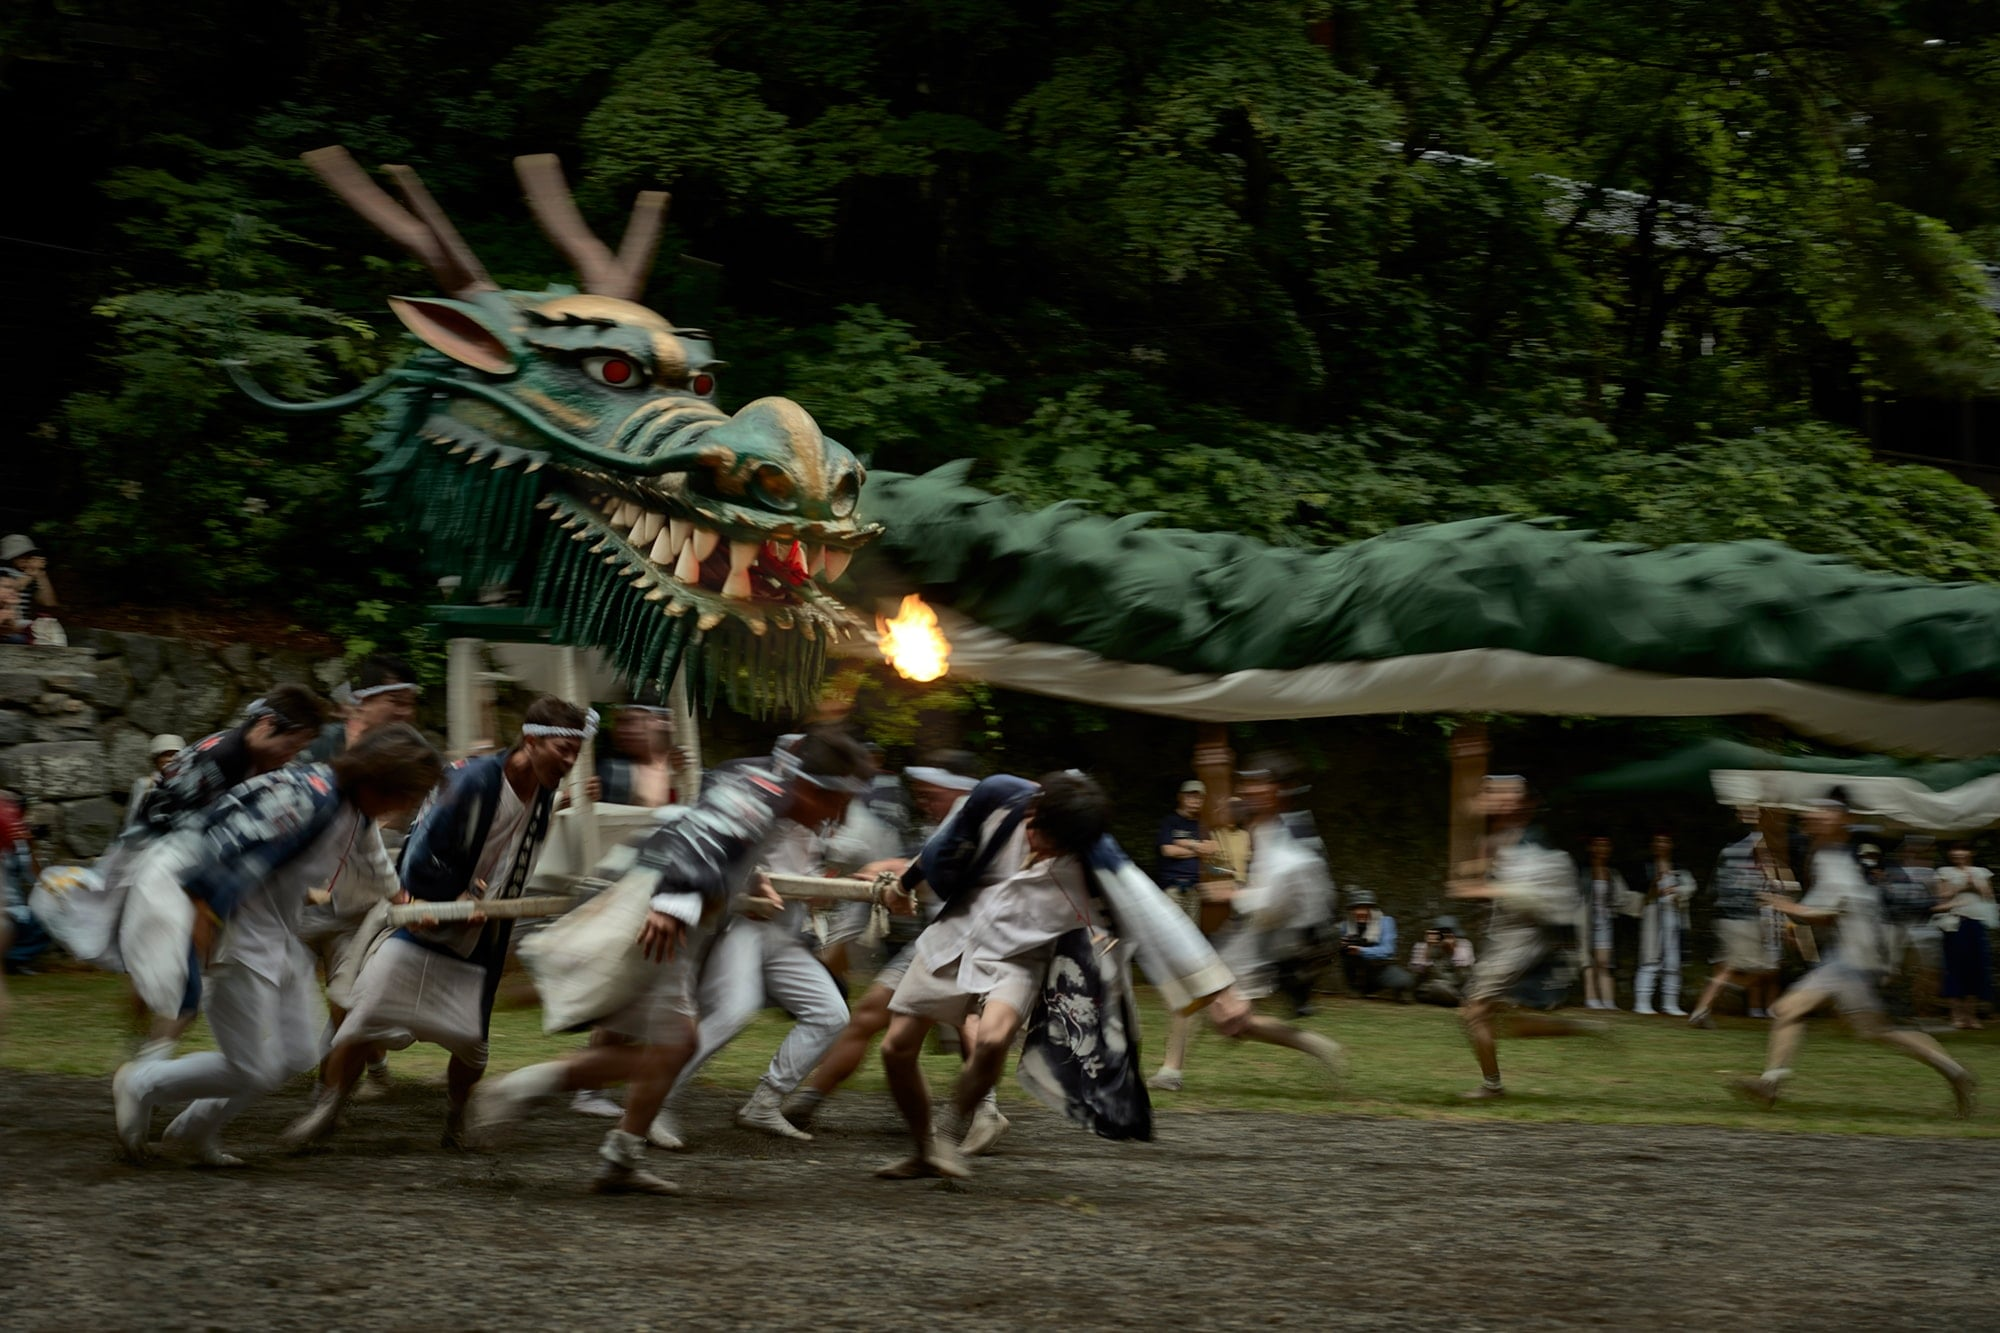 "Every year in July, the Ryujin (Dragon God) flies through the town of Miyota at the Miyota Ryujin Matsuri. Koyama's photo collection ""Miyota no Neiro"" can be purchased at the Asama International Photo Festival 2019 for 5,000 Yen. The photo collection is also included as Miyota's Hometown tax program. Photography by © Kaz Koyama 